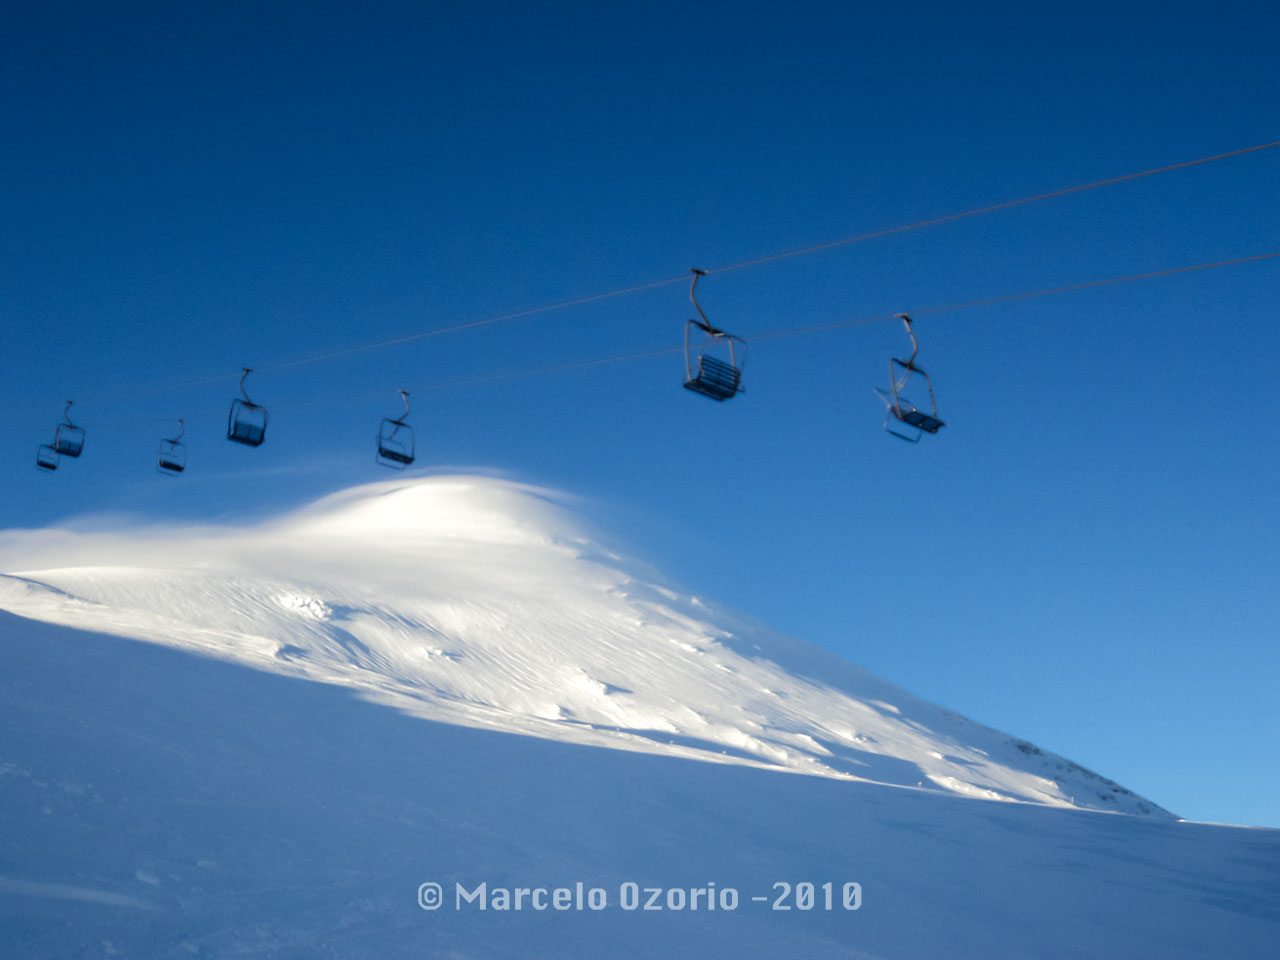 Chair lifts of Osorno Volcano, Patagonia, Chile. Really cool place to snowboard, once you have a good weather. This picture was taken in 2010 season. This winter resort is rarely crowded. Mainly, you do out of piste.